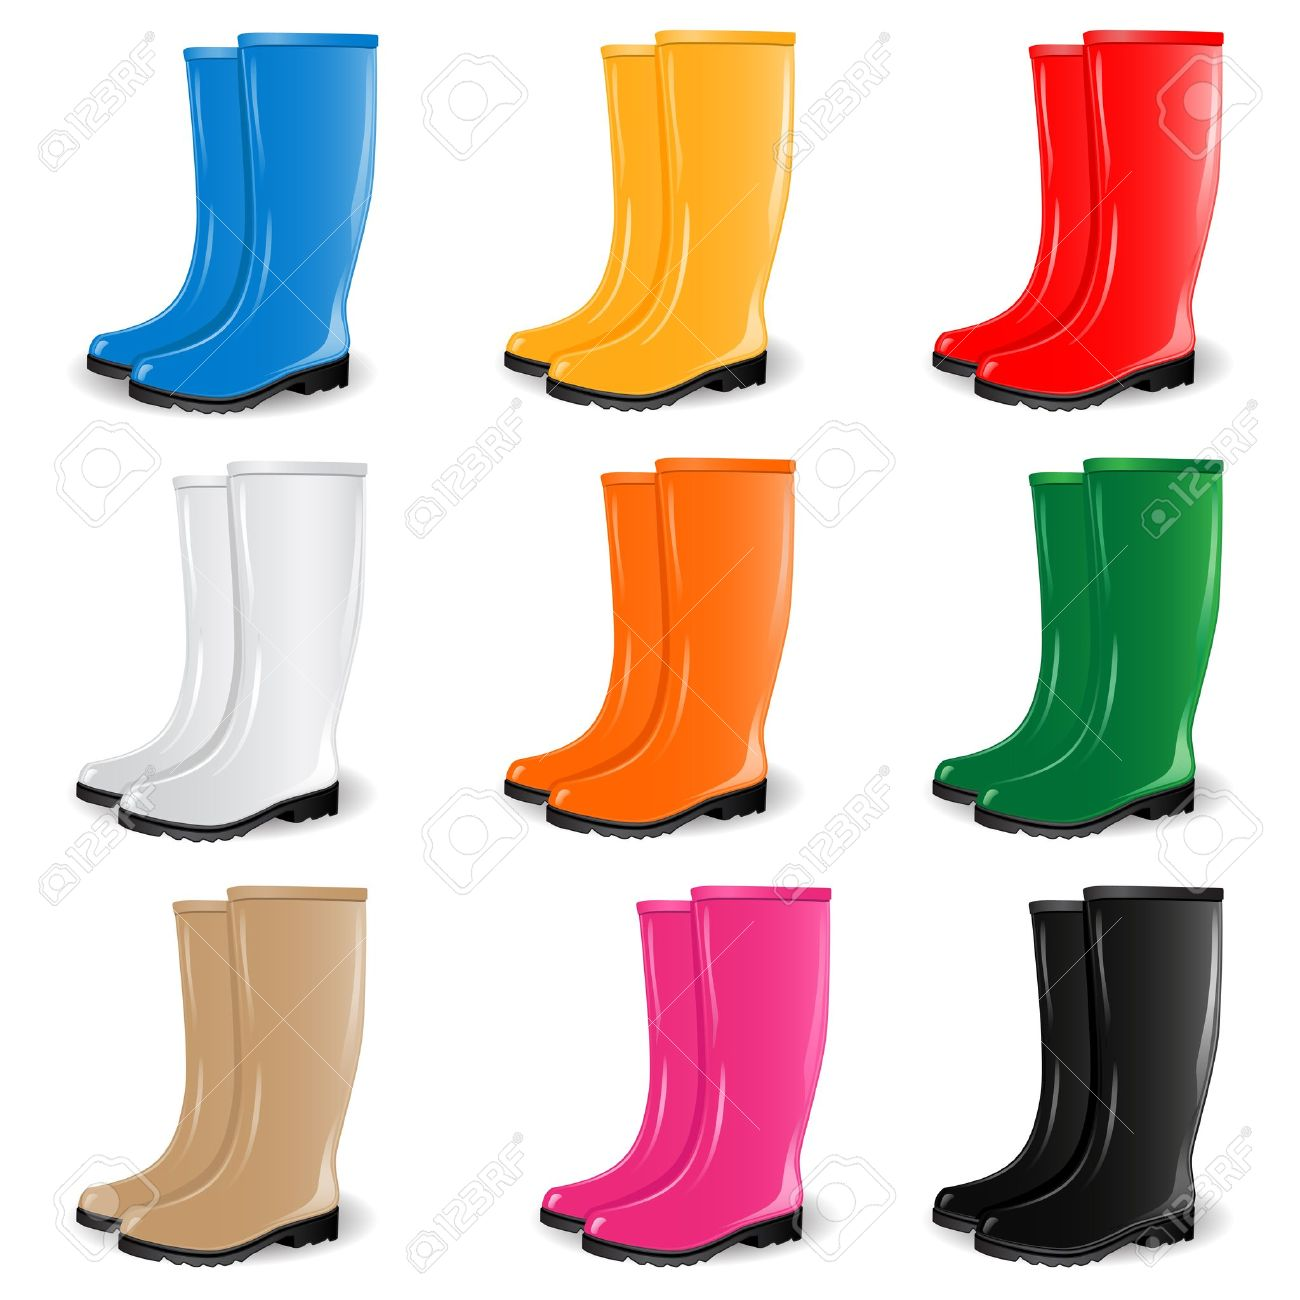 Yellow rain boot clip art